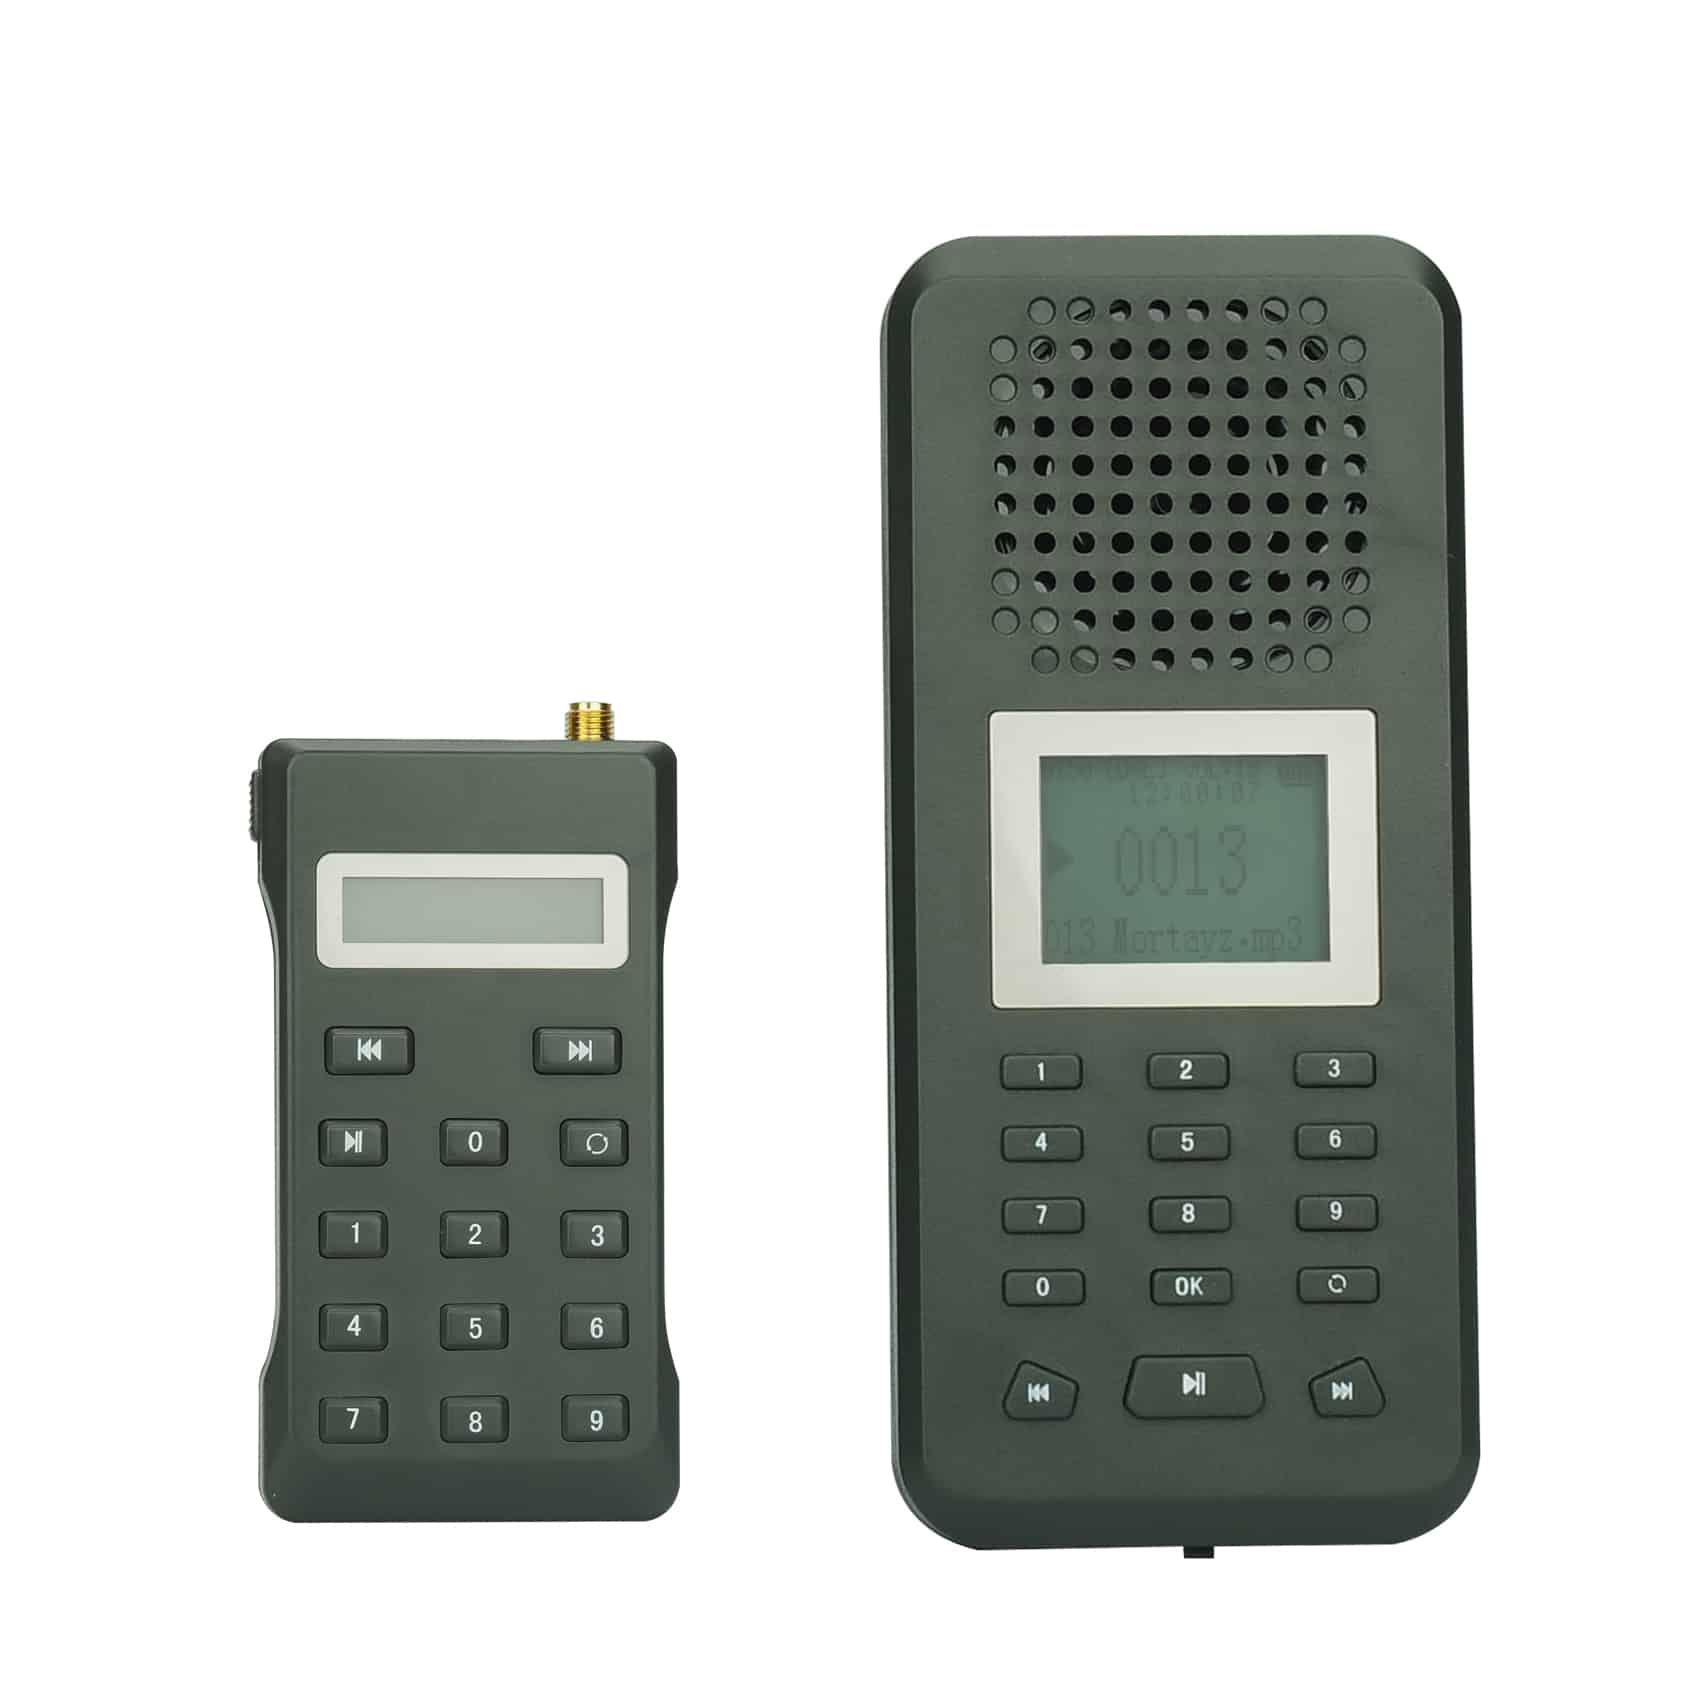 Digital Hunting Bird Caller - Remote Control, Built-in 20W Speaker, 2200mAh Lithium Battery, 150 Built-In Bird Sounds